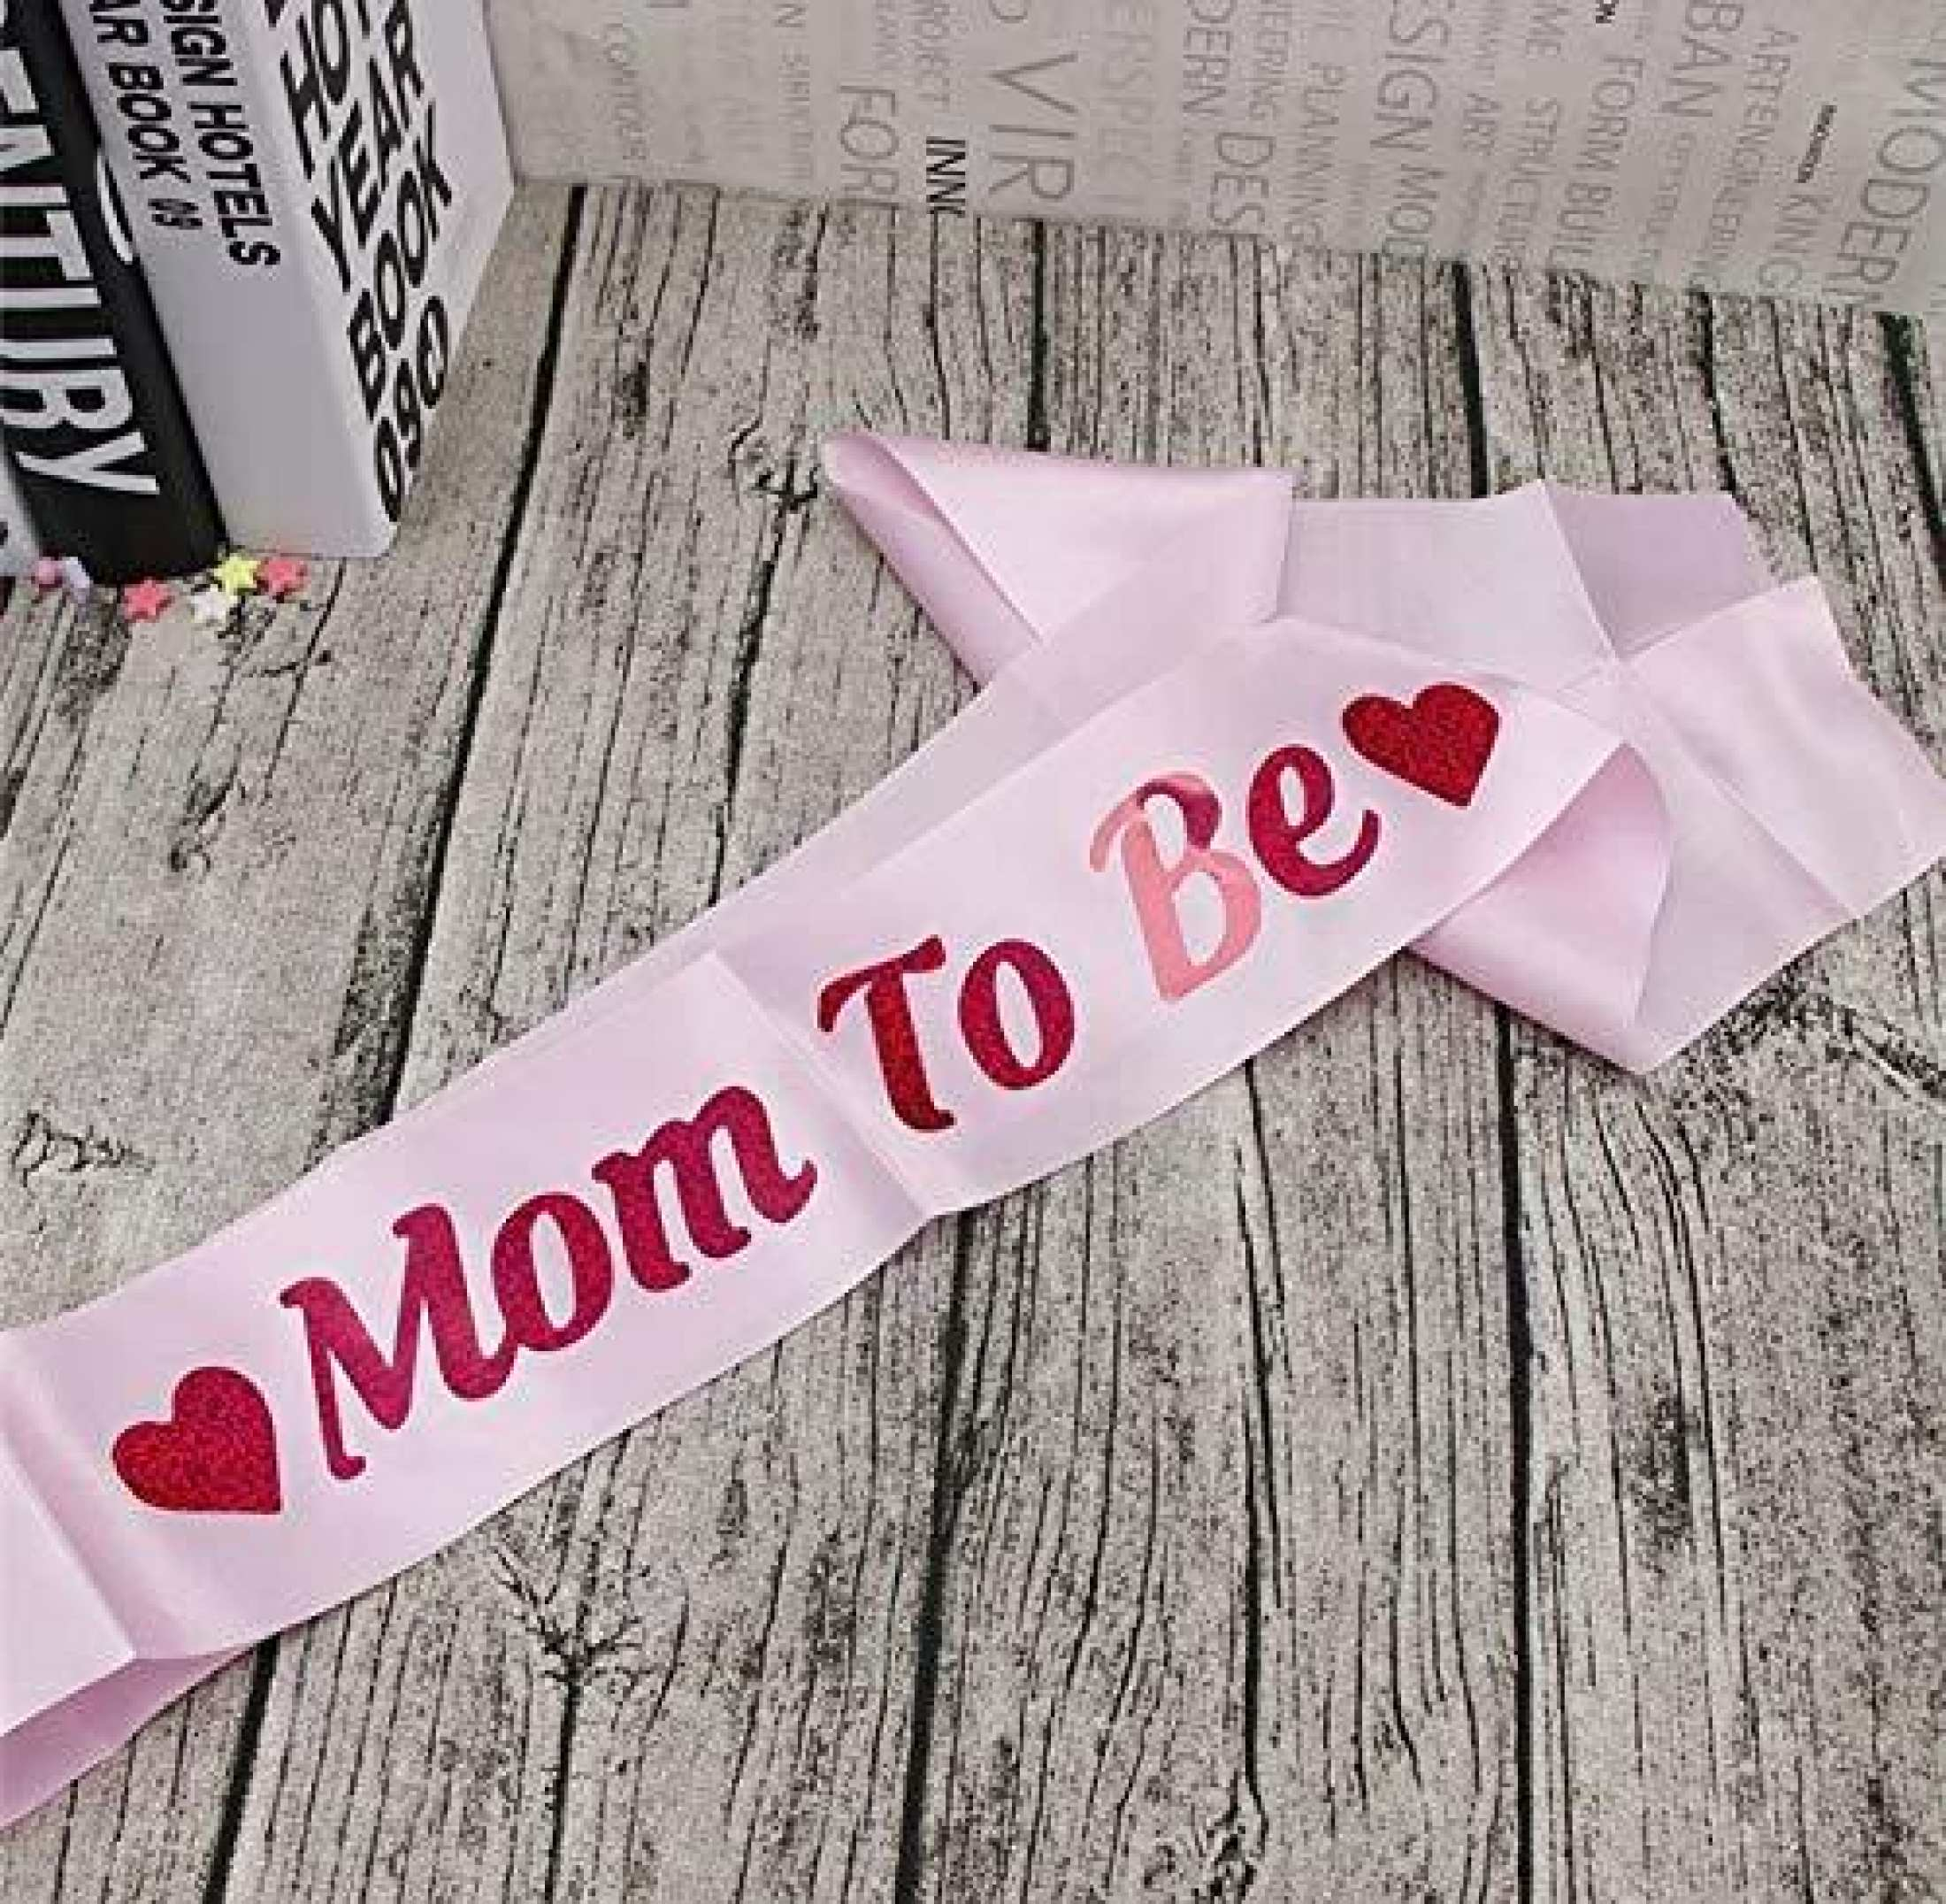 1-pc-pink-baby-shower-satin-ribbon-mom-to-be-sash-shoulder-strap-showing-words-mom-to-be-party-props